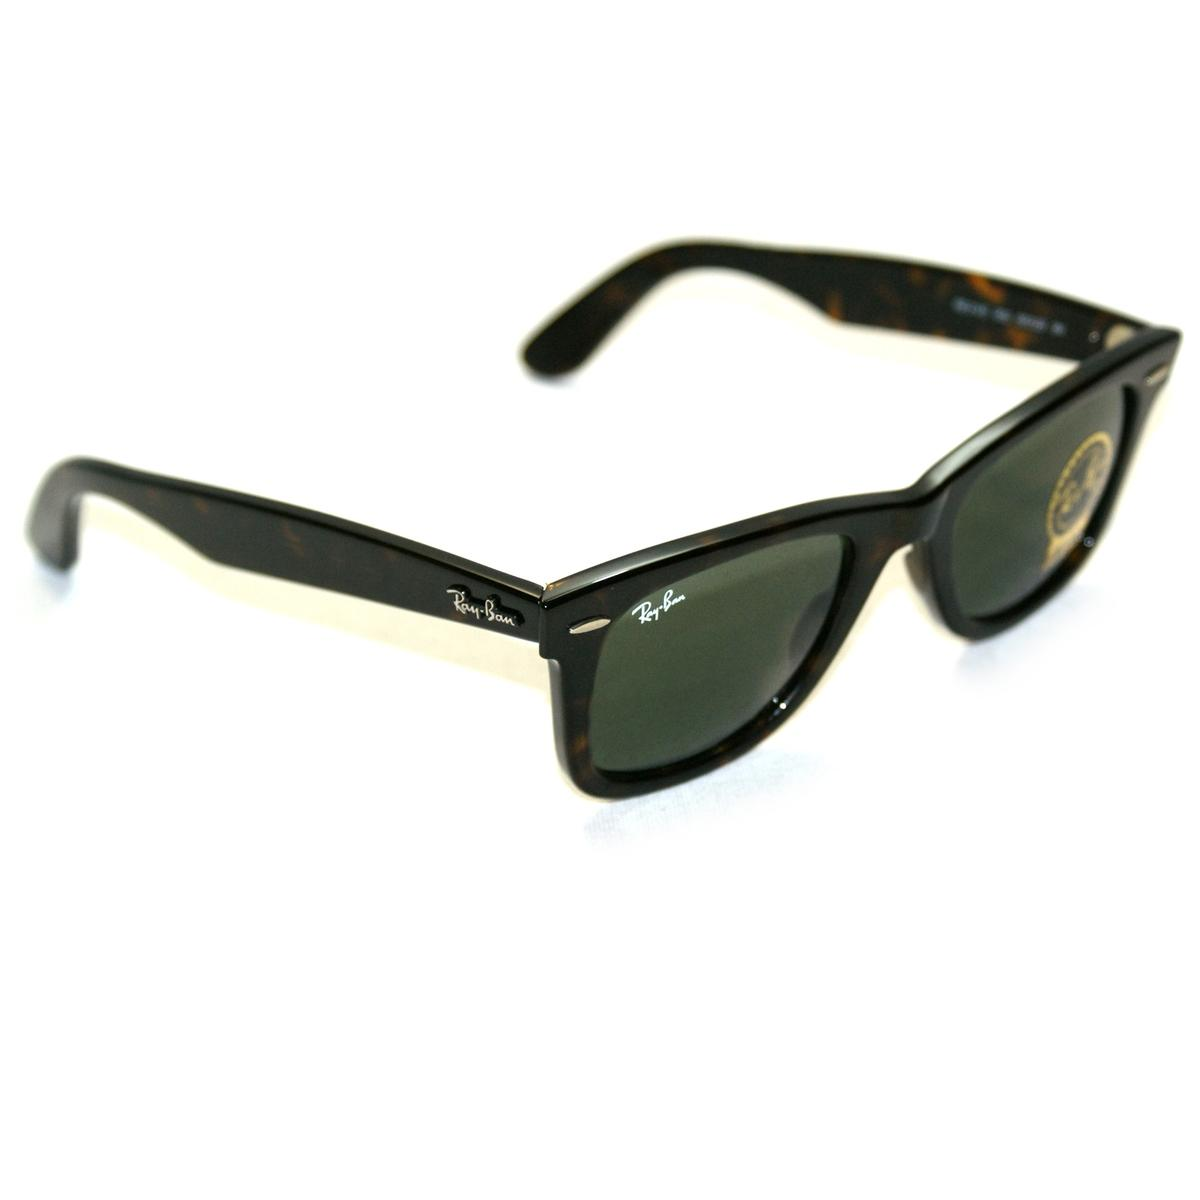 best price ray bans 5fn9  Best Price Ray Ban Wayfarer Sunglasses